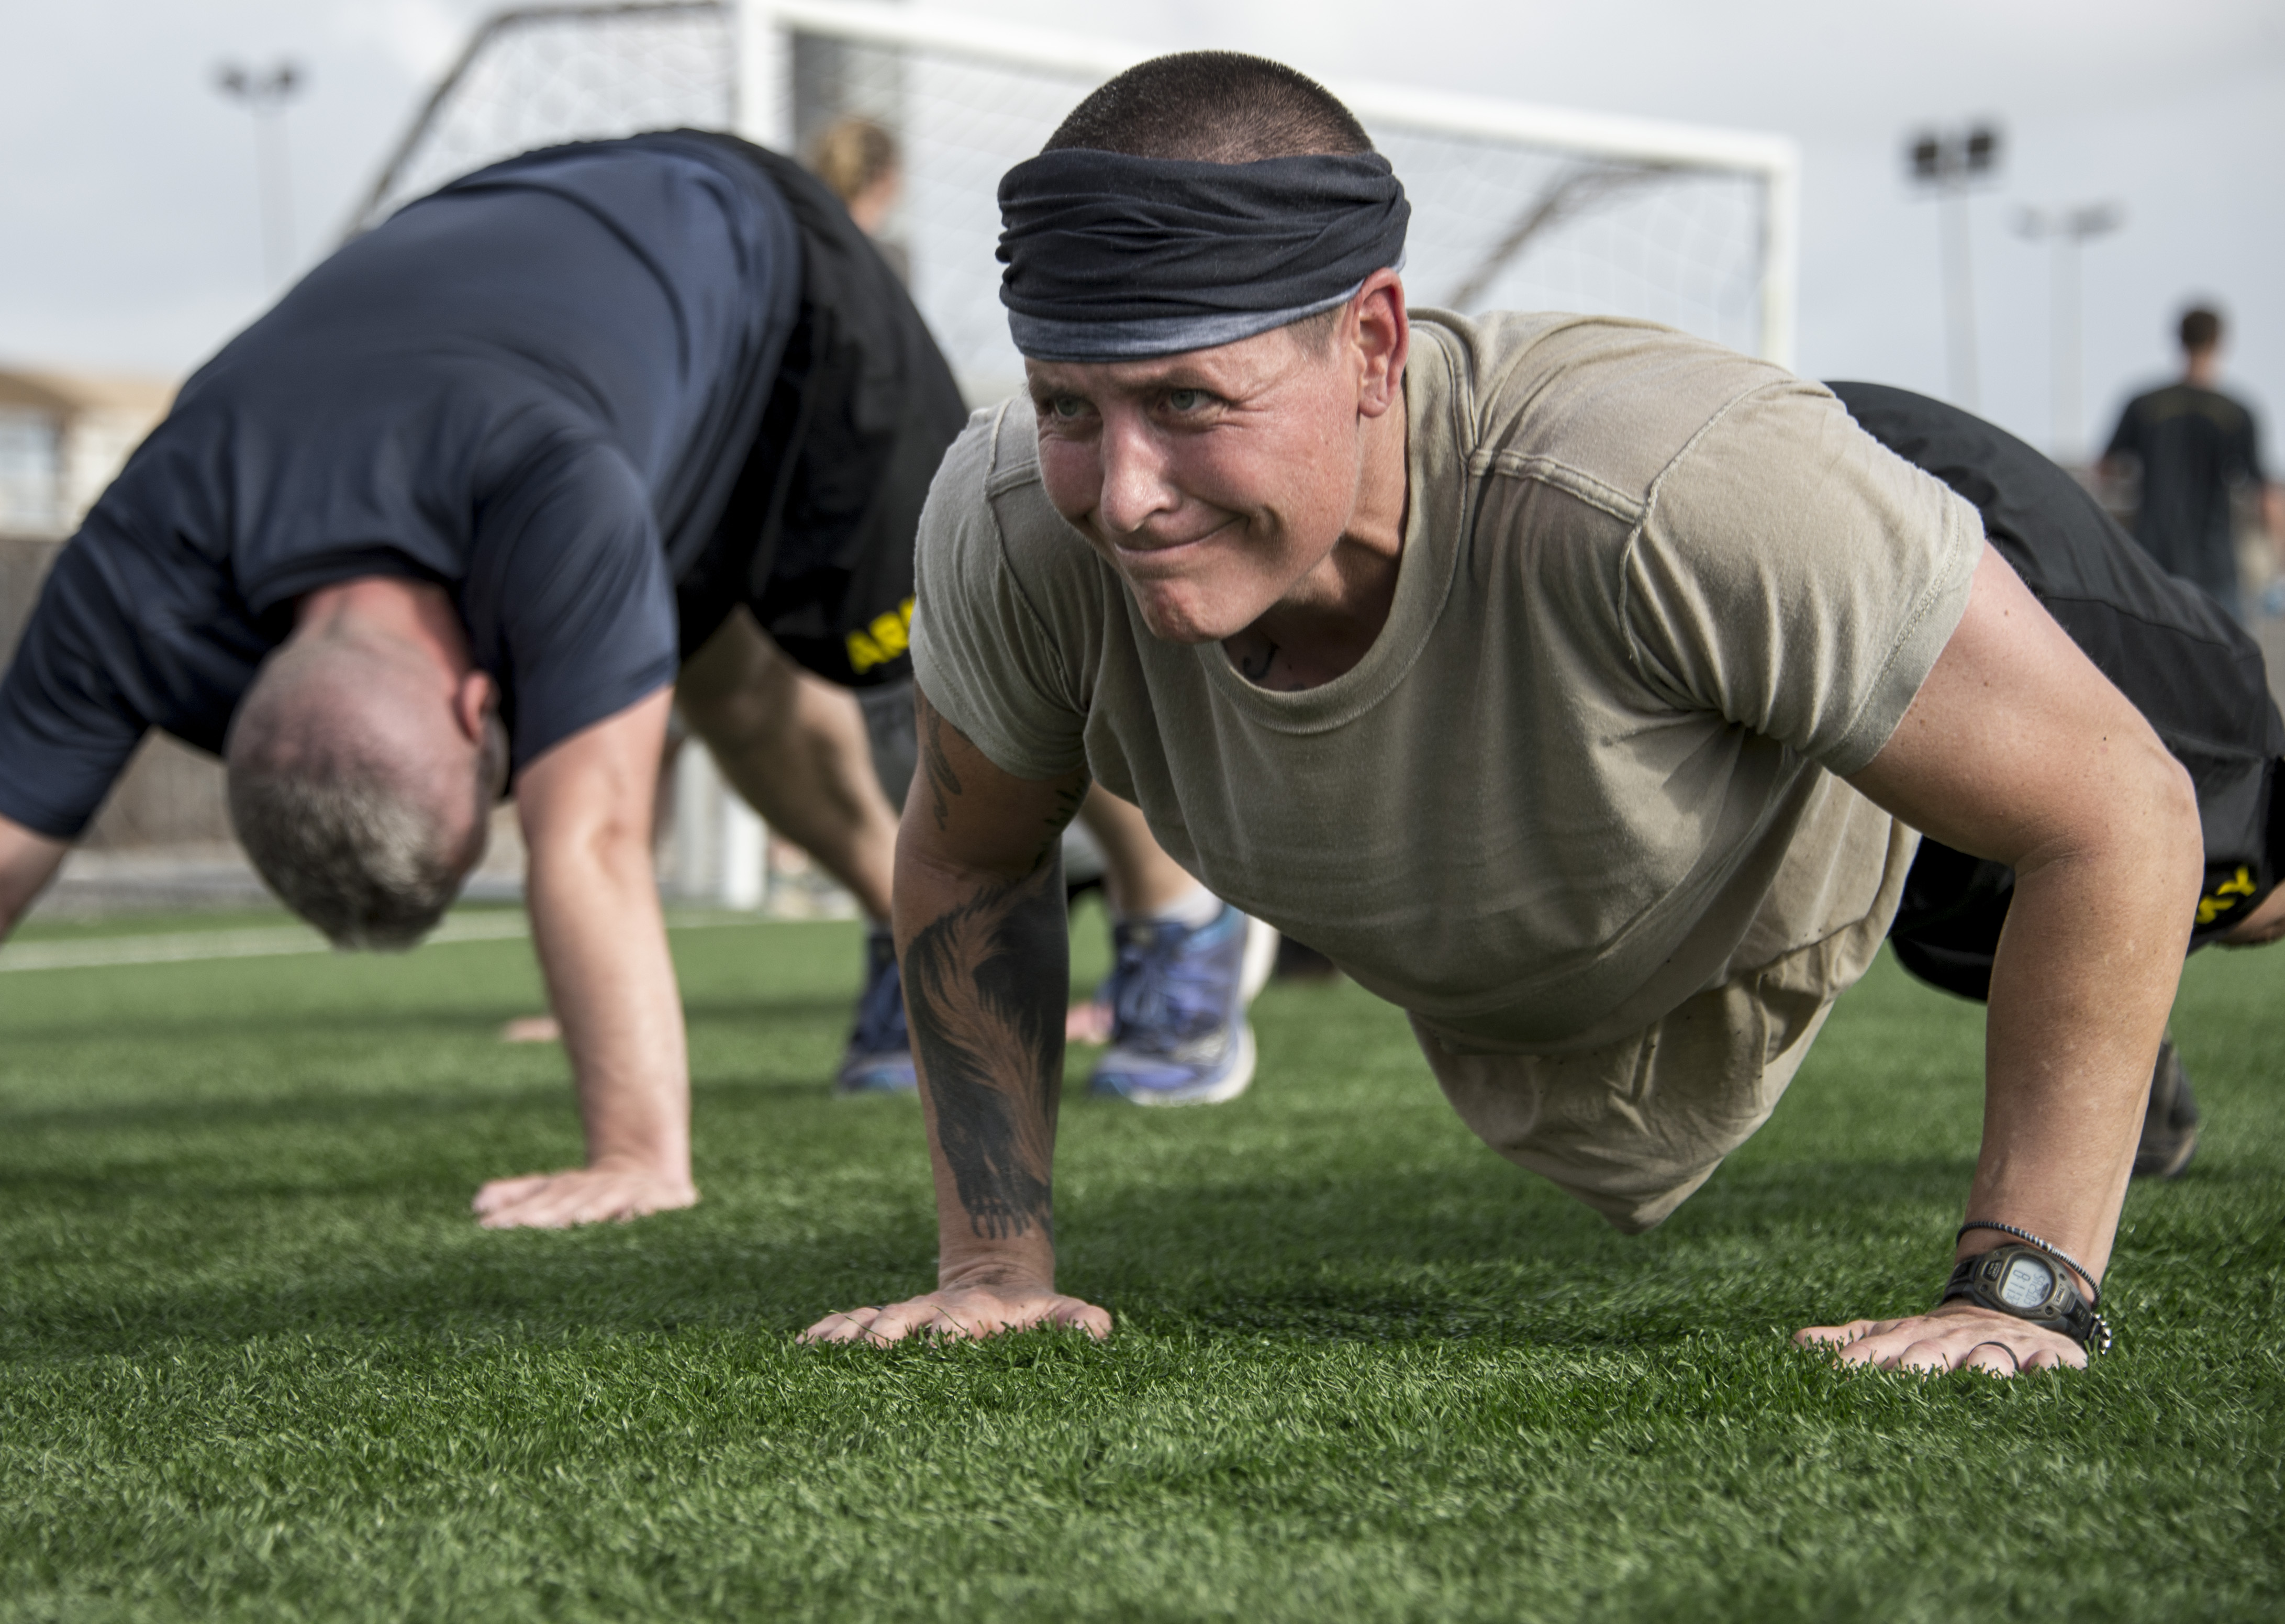 U.S. Army Staff Sgt. Hannah Mabel participates in the push-up portion of the Joint Warrior Competition (JWC) on Camp Lemonnier, Djibouti, March 25, 2017. Participants in the JWC test themselves physically in various events including 50 timed push-ups. (U.S. Air National Guard photo by Staff Sgt. Christian Jadot)